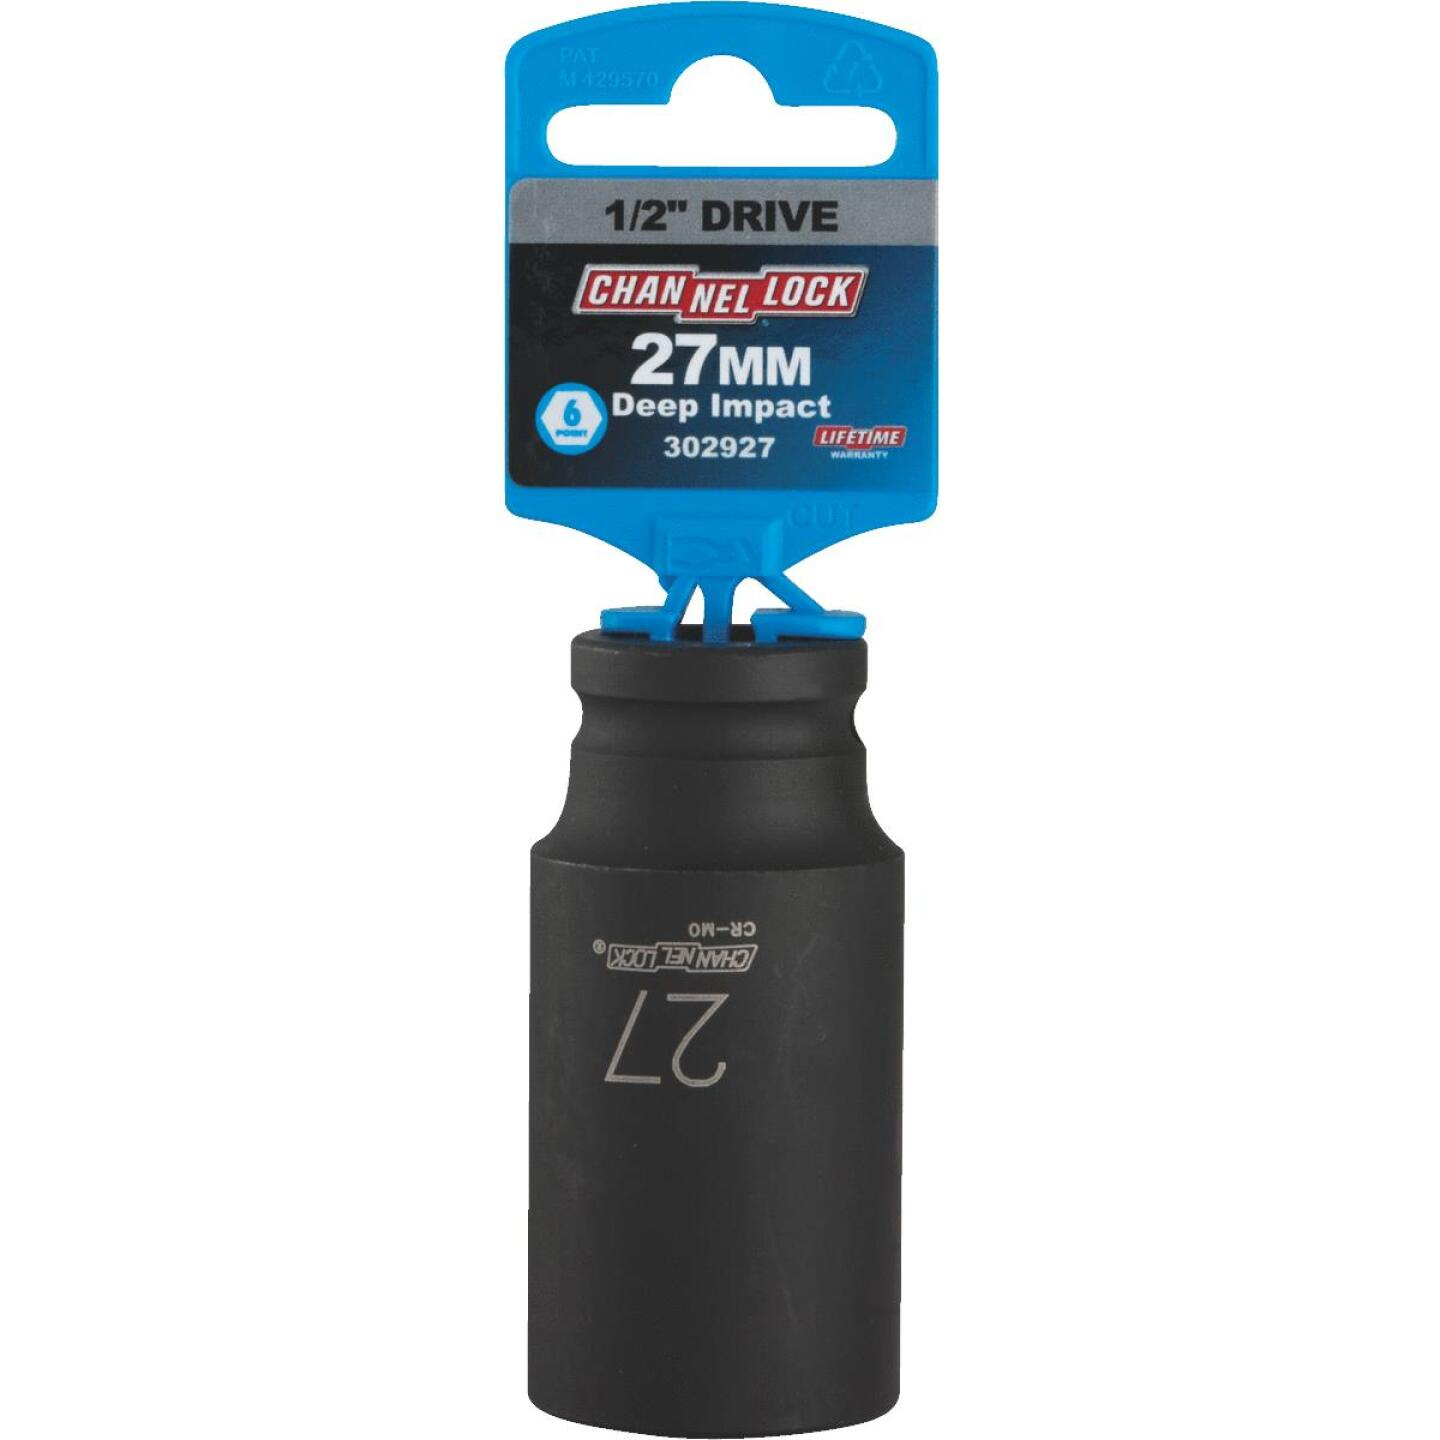 Channellock 1/2 In. Drive 27 mm 6-Point Deep Metric Impact Socket Image 2